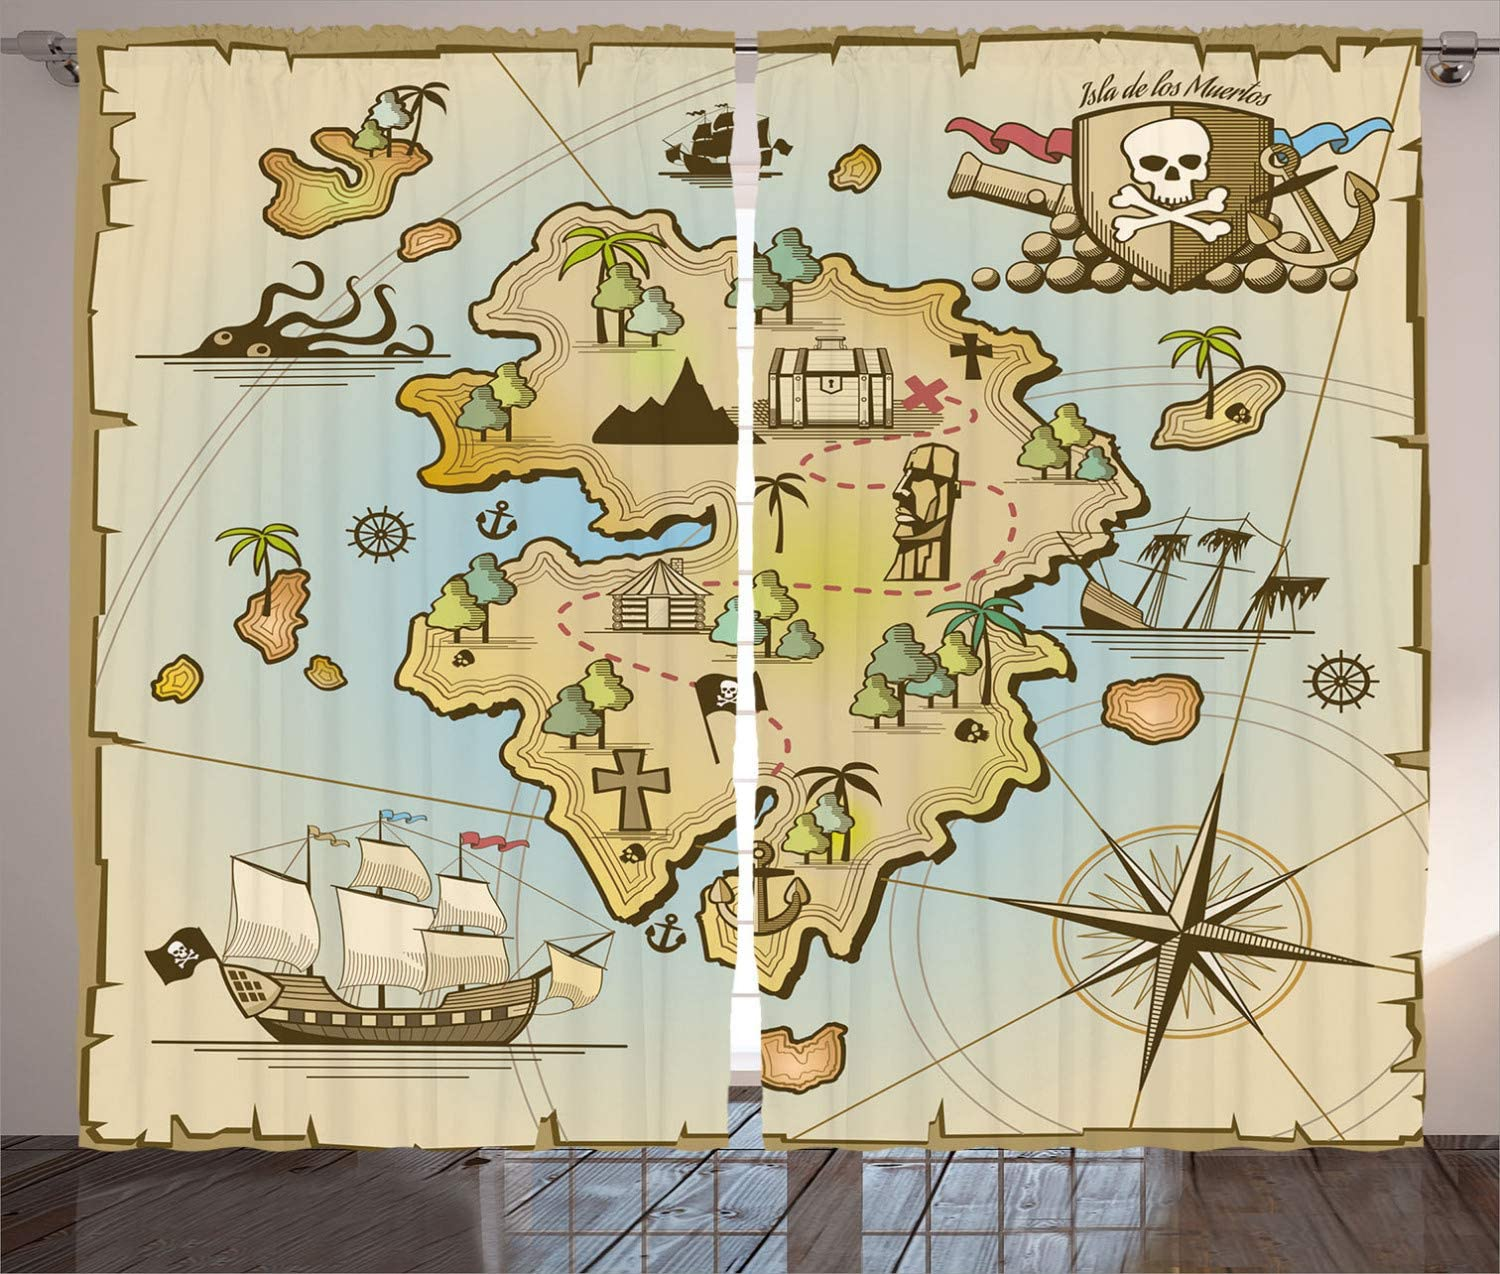 Island Map Curtains Cartoon Treasure Island Pirate <font><b>Ship</b></font> Chest Kraken Octopus Nautical Kids Design Living Room Bedroom Window image